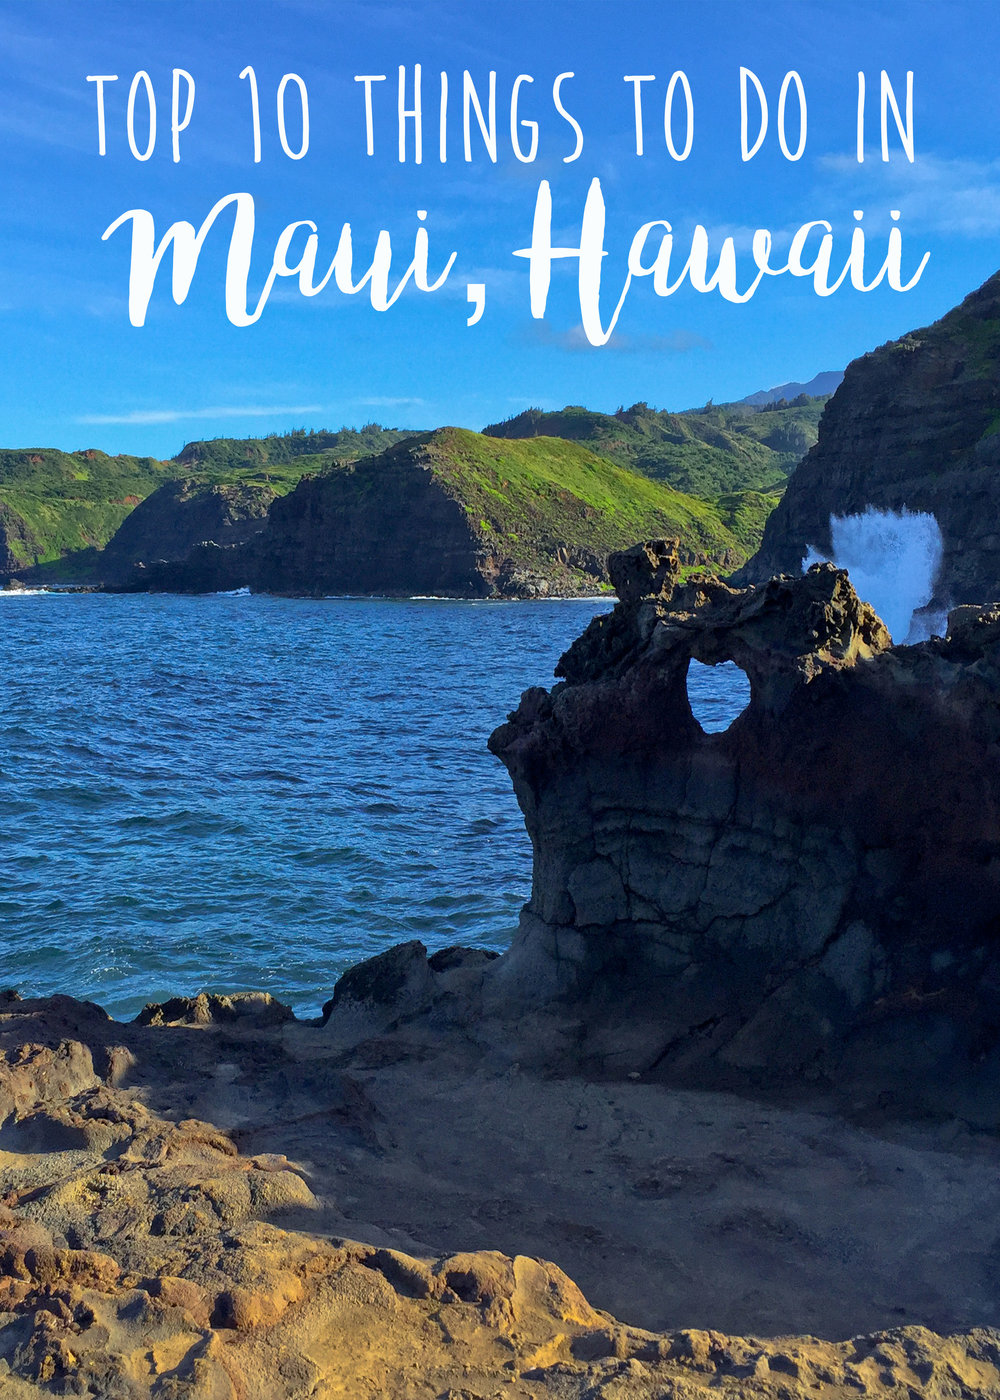 Top 10 Things to do in Maui, Hawaii